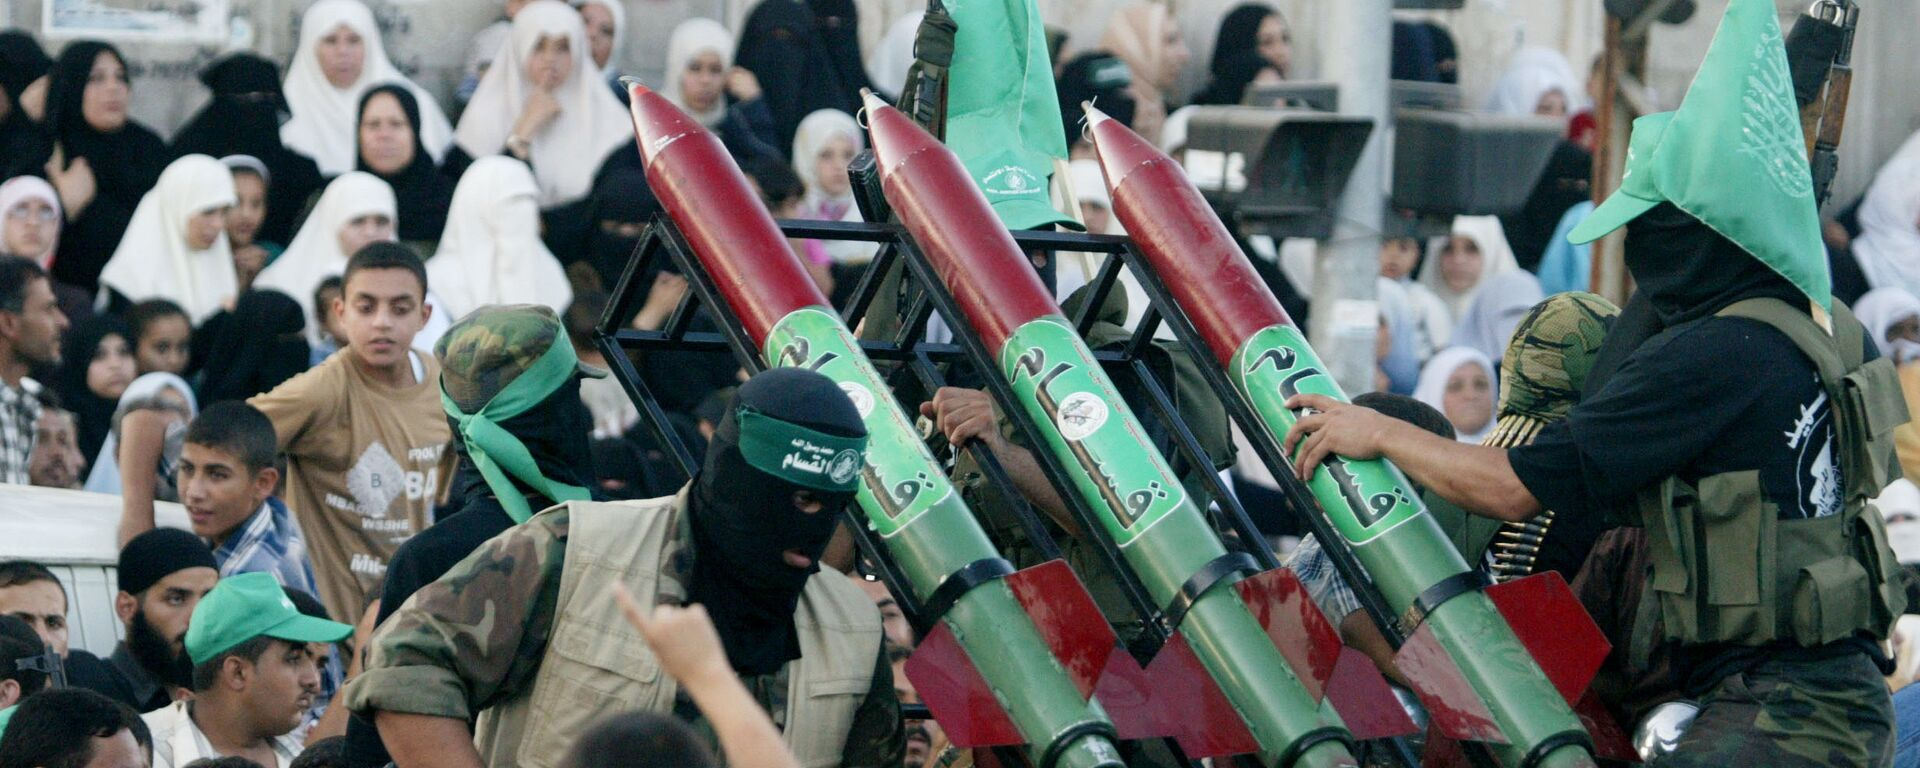 Masked Palestinian Hamas militants display their weapons during a parade in Gaza City. File photo. - Sputnik Italia, 1920, 20.05.2021